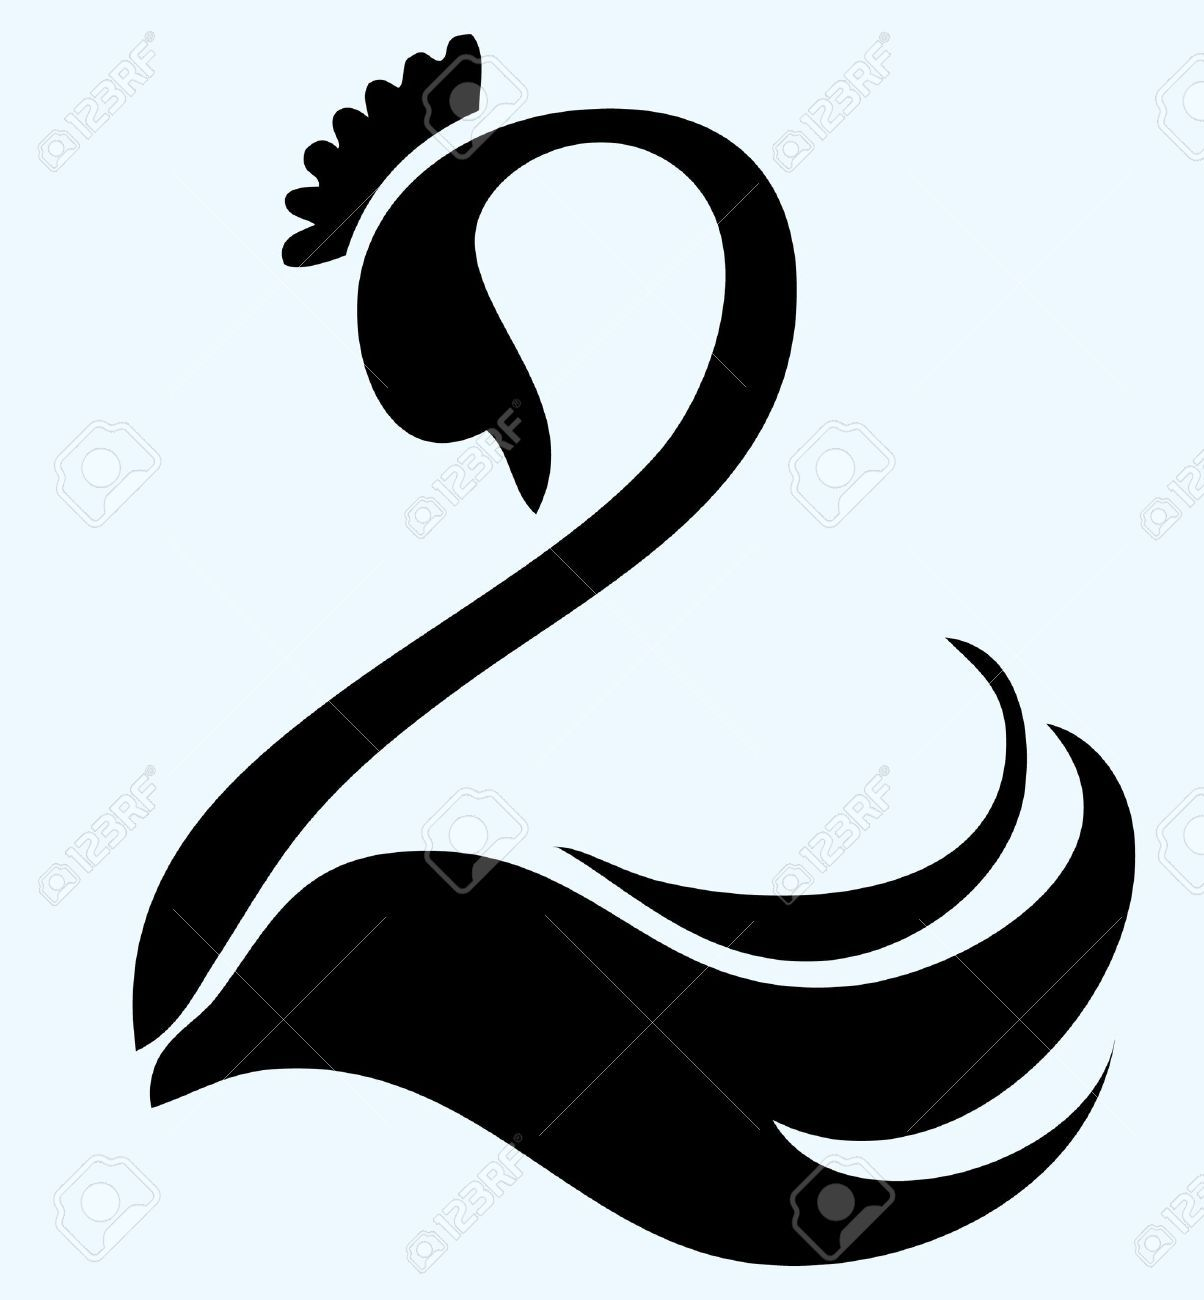 Swan lake black and white free clipart clip art free stock Swan Stock Vector Illustration And Royalty Free Swan Clipart | swan ... clip art free stock